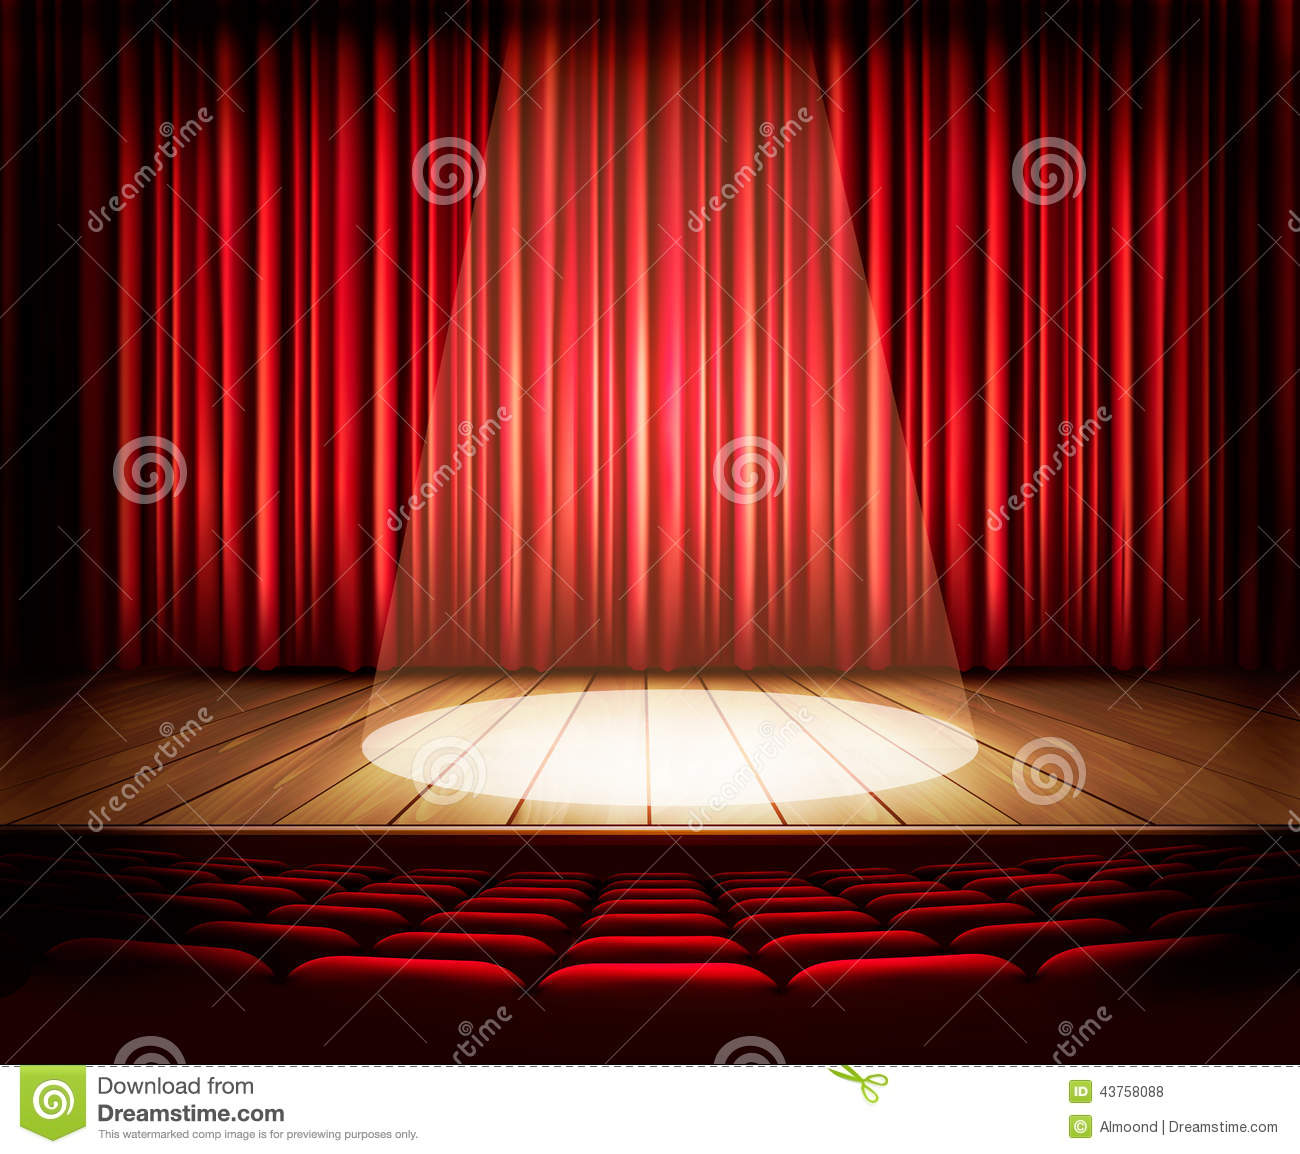 A theater stage with a red curtain, seats and a spotlight.